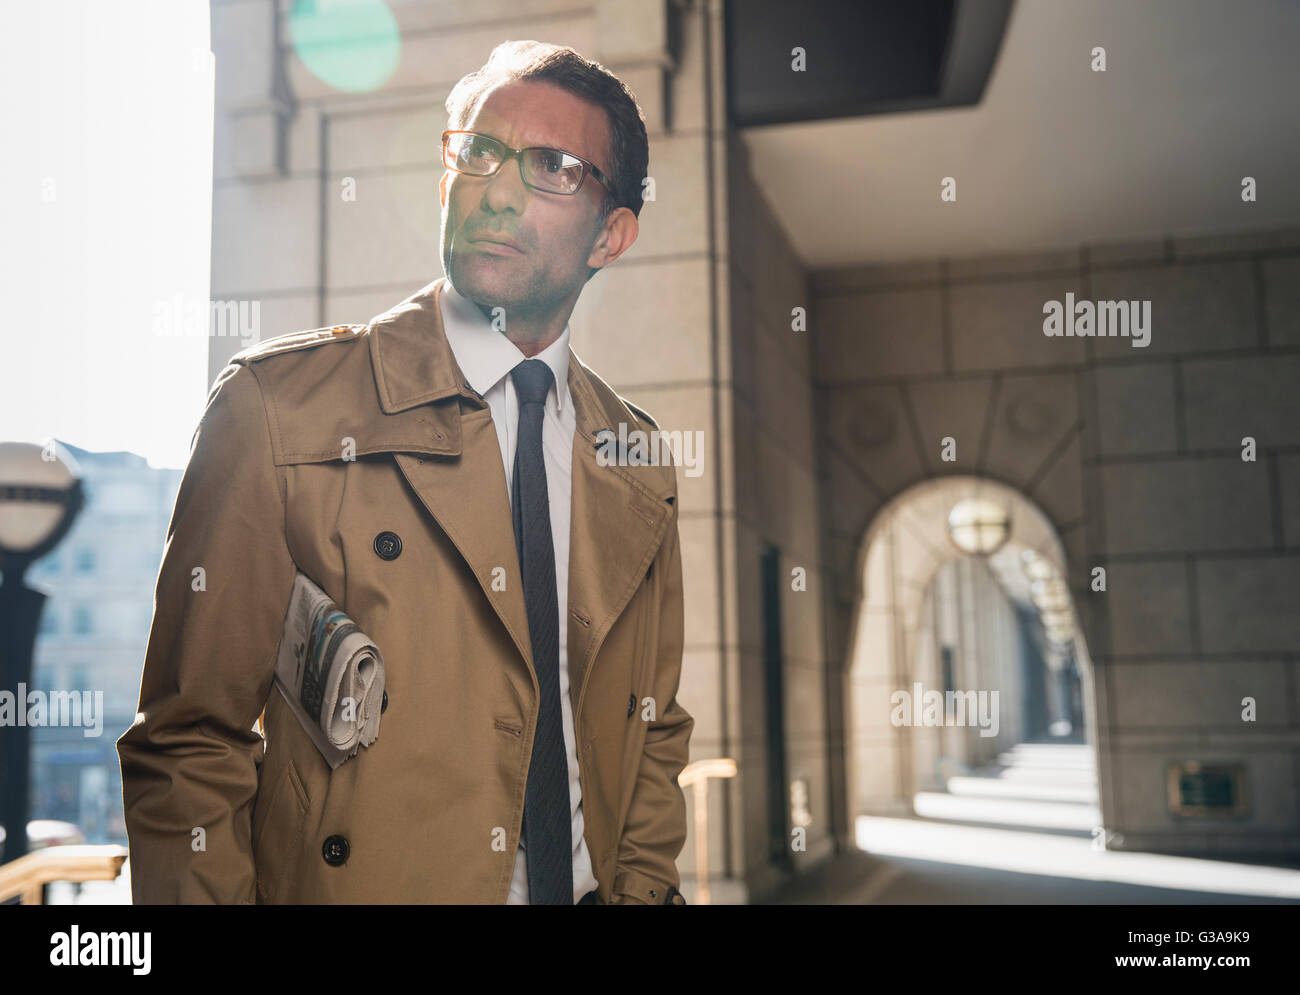 Corporate businessman in trench coat standing in sunny cloister - Stock Image